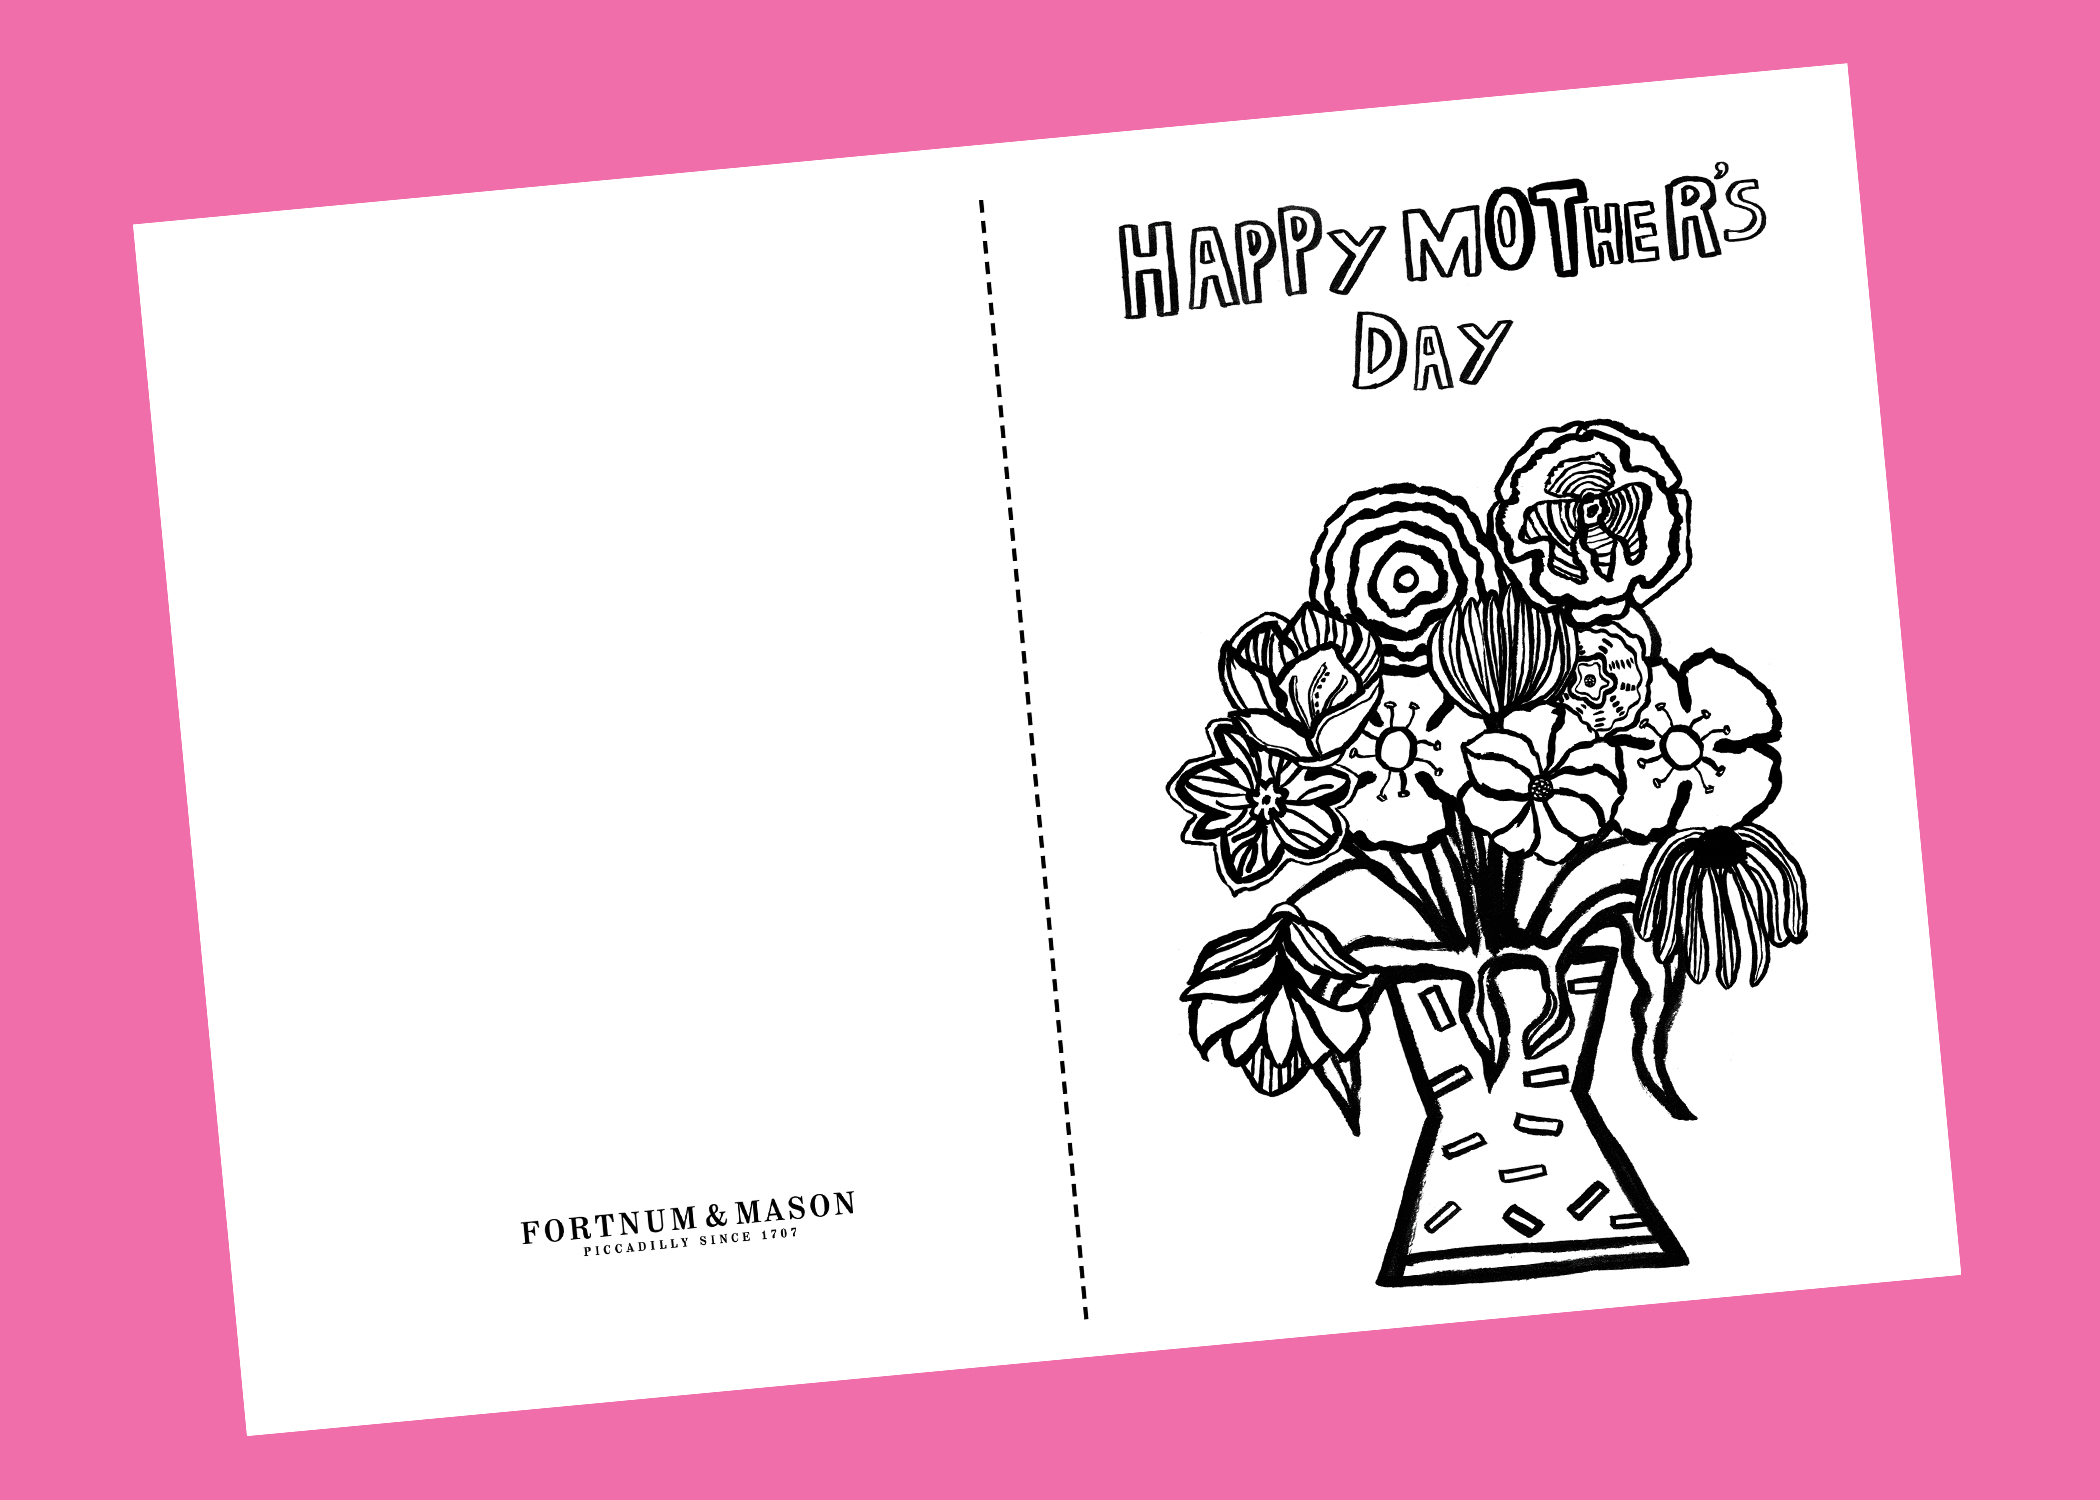 MotherDay-pink-background.jpg